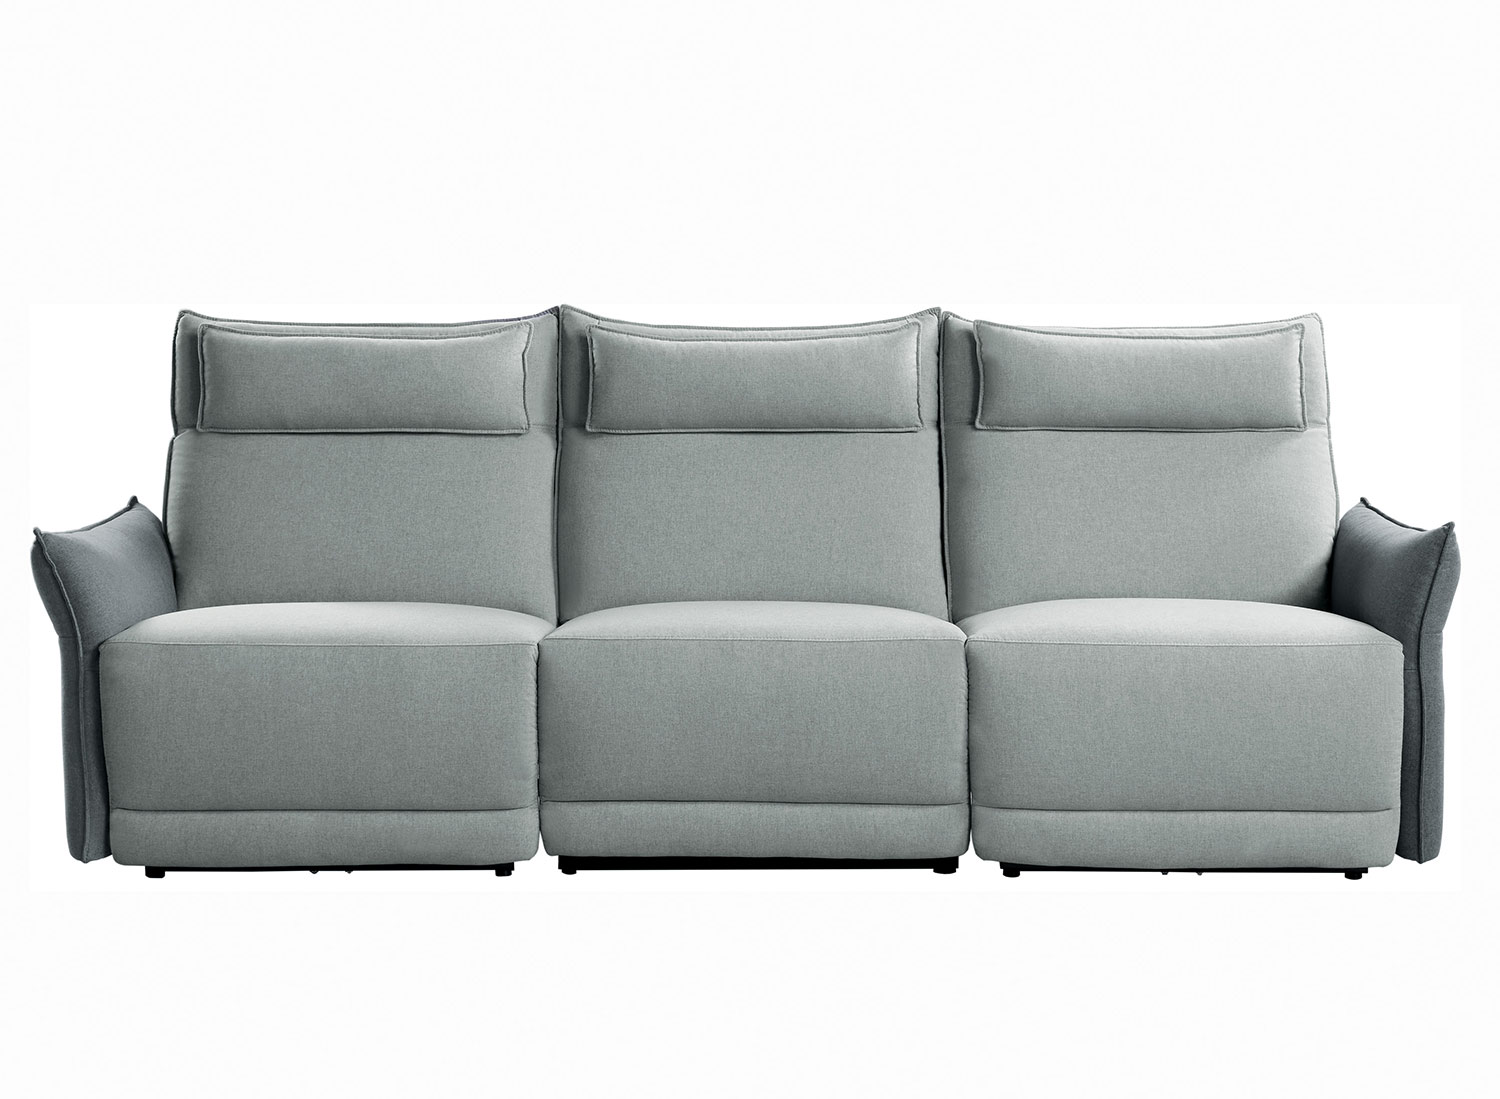 Homelegance Linette Power Double Reclining Sofa with Power Headrests - Gray